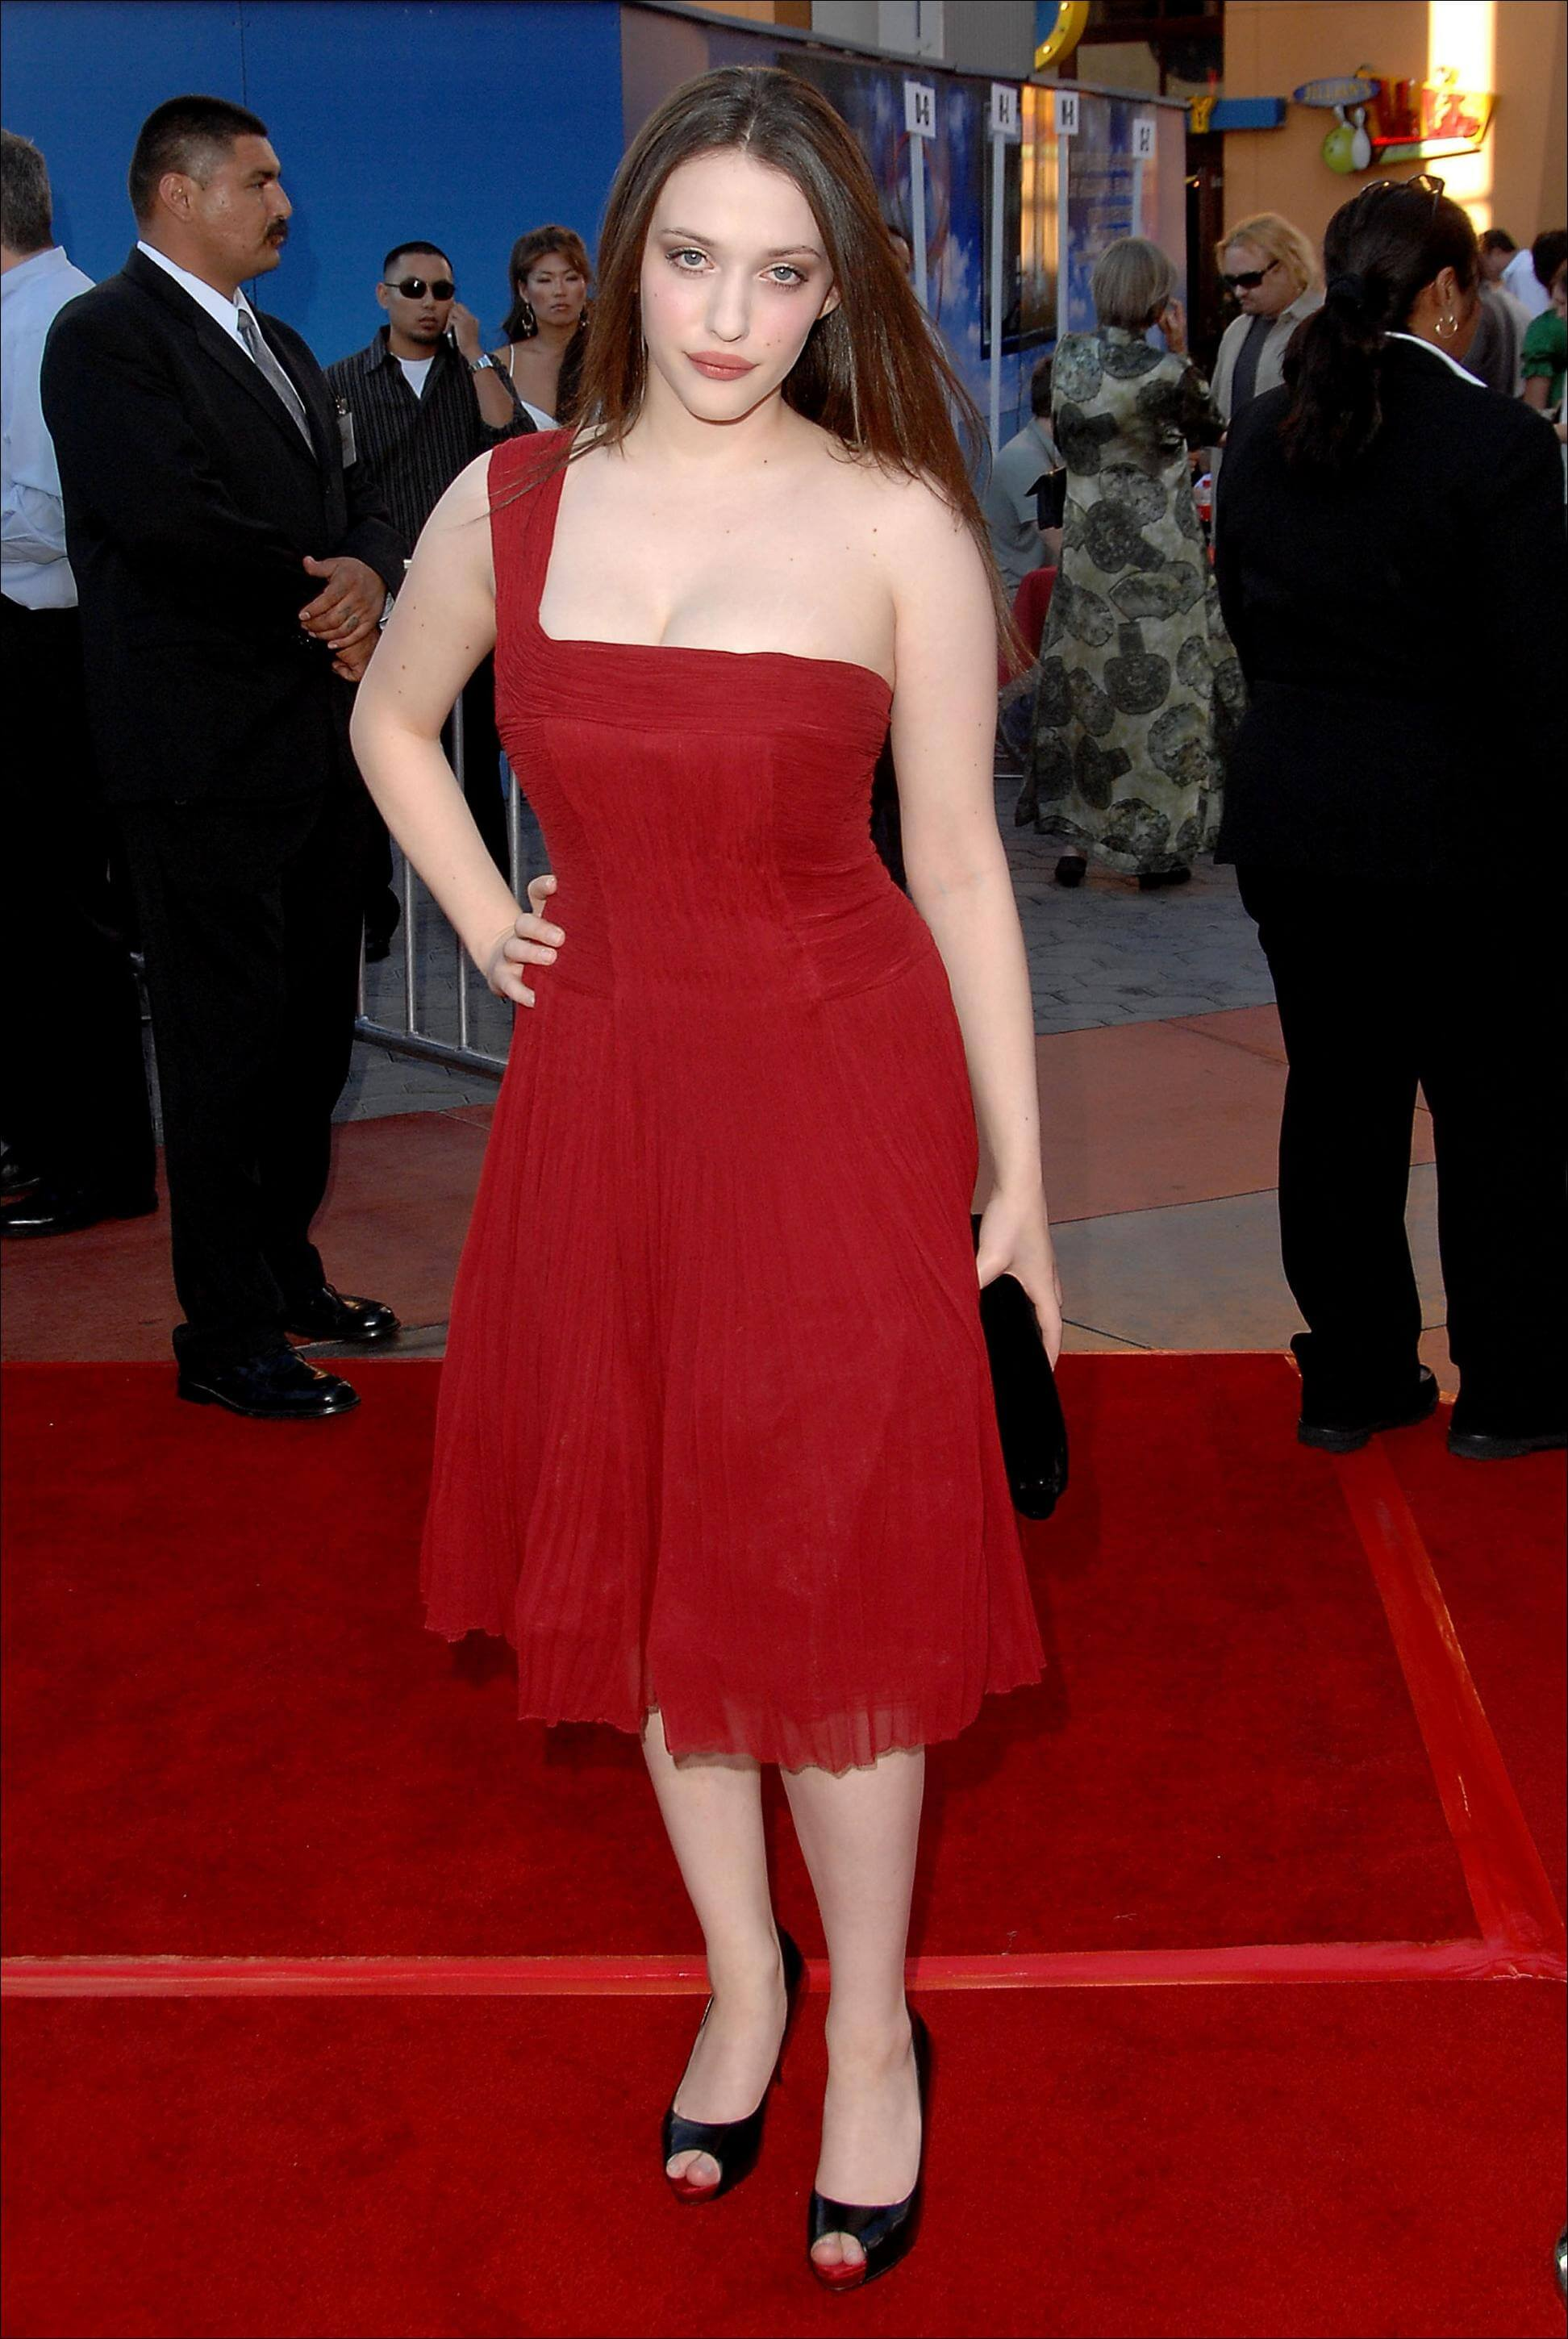 kat dennings hot red pic